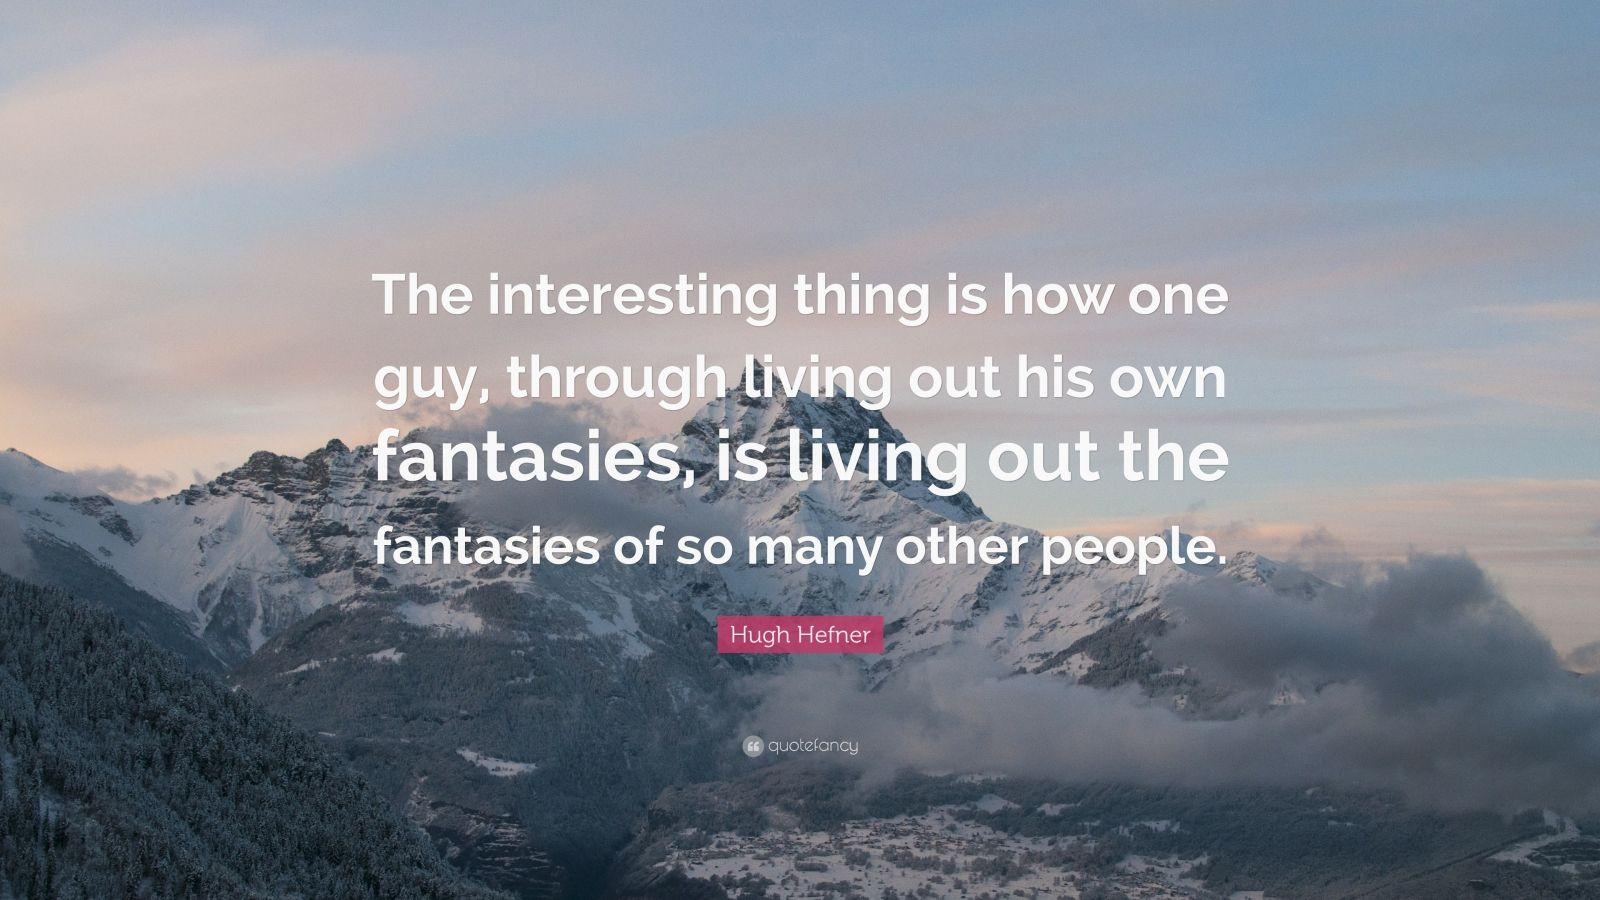 """Hugh Hefner Quote: """"The interesting thing is how one guy, through living out his own fantasies, is living out the fantasies of so many other people."""""""